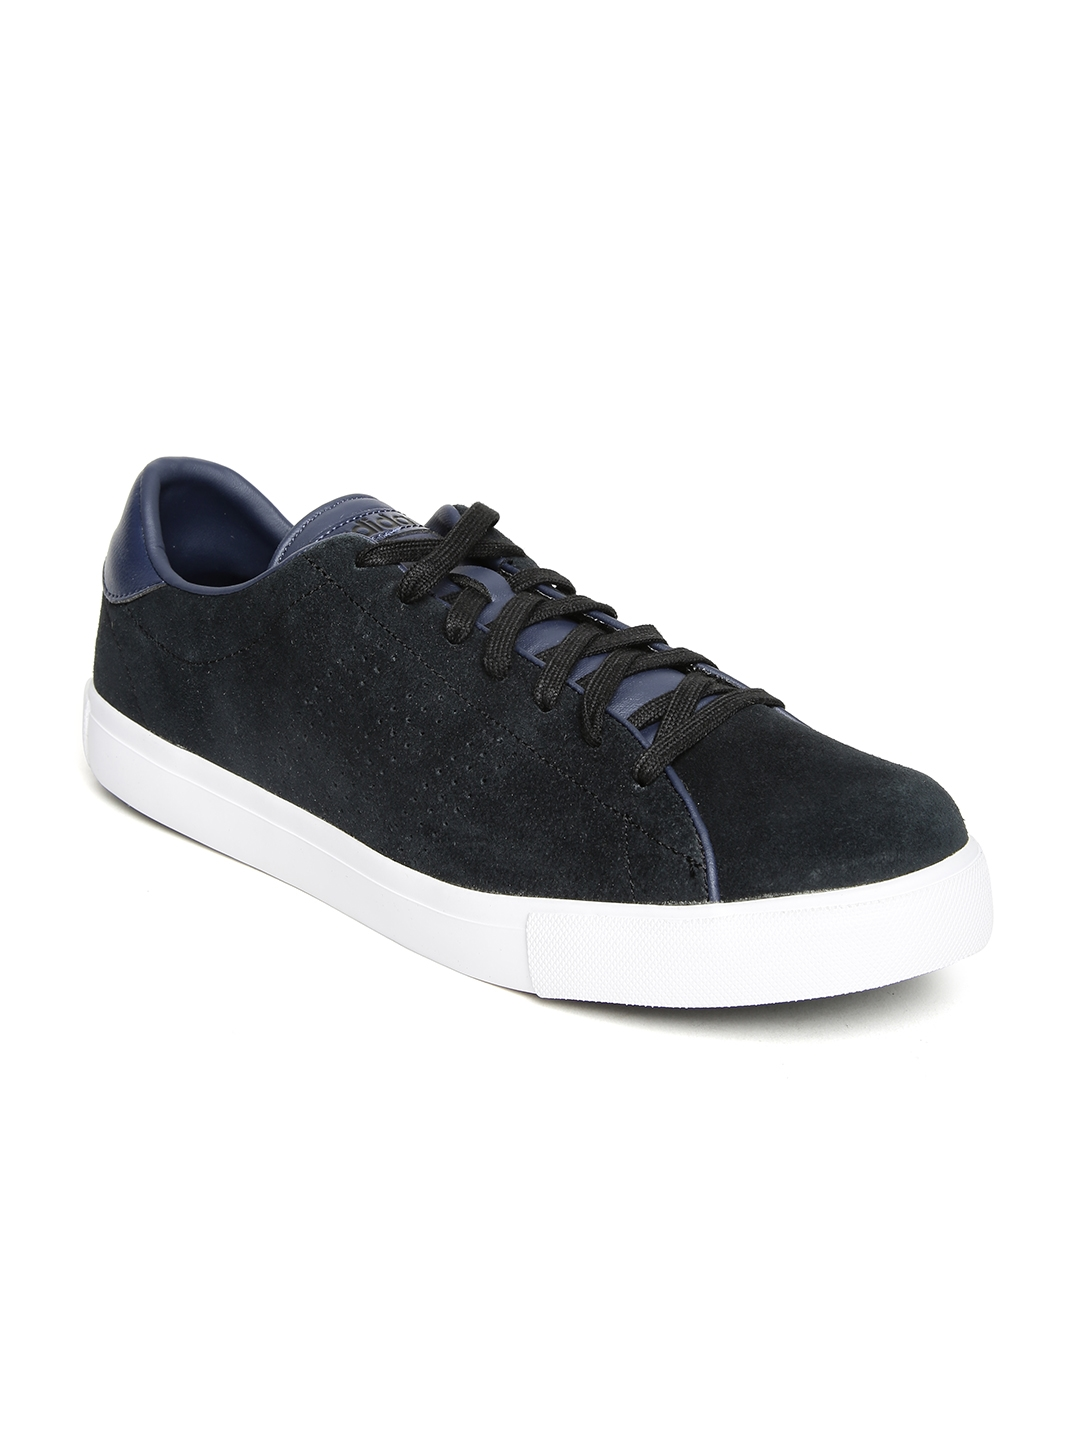 new style 7e5f6 89d30 Buy ADIDAS NEO Men Black Daily Line Suede Sneakers - Casual Shoes for Men  1236824  Myntra